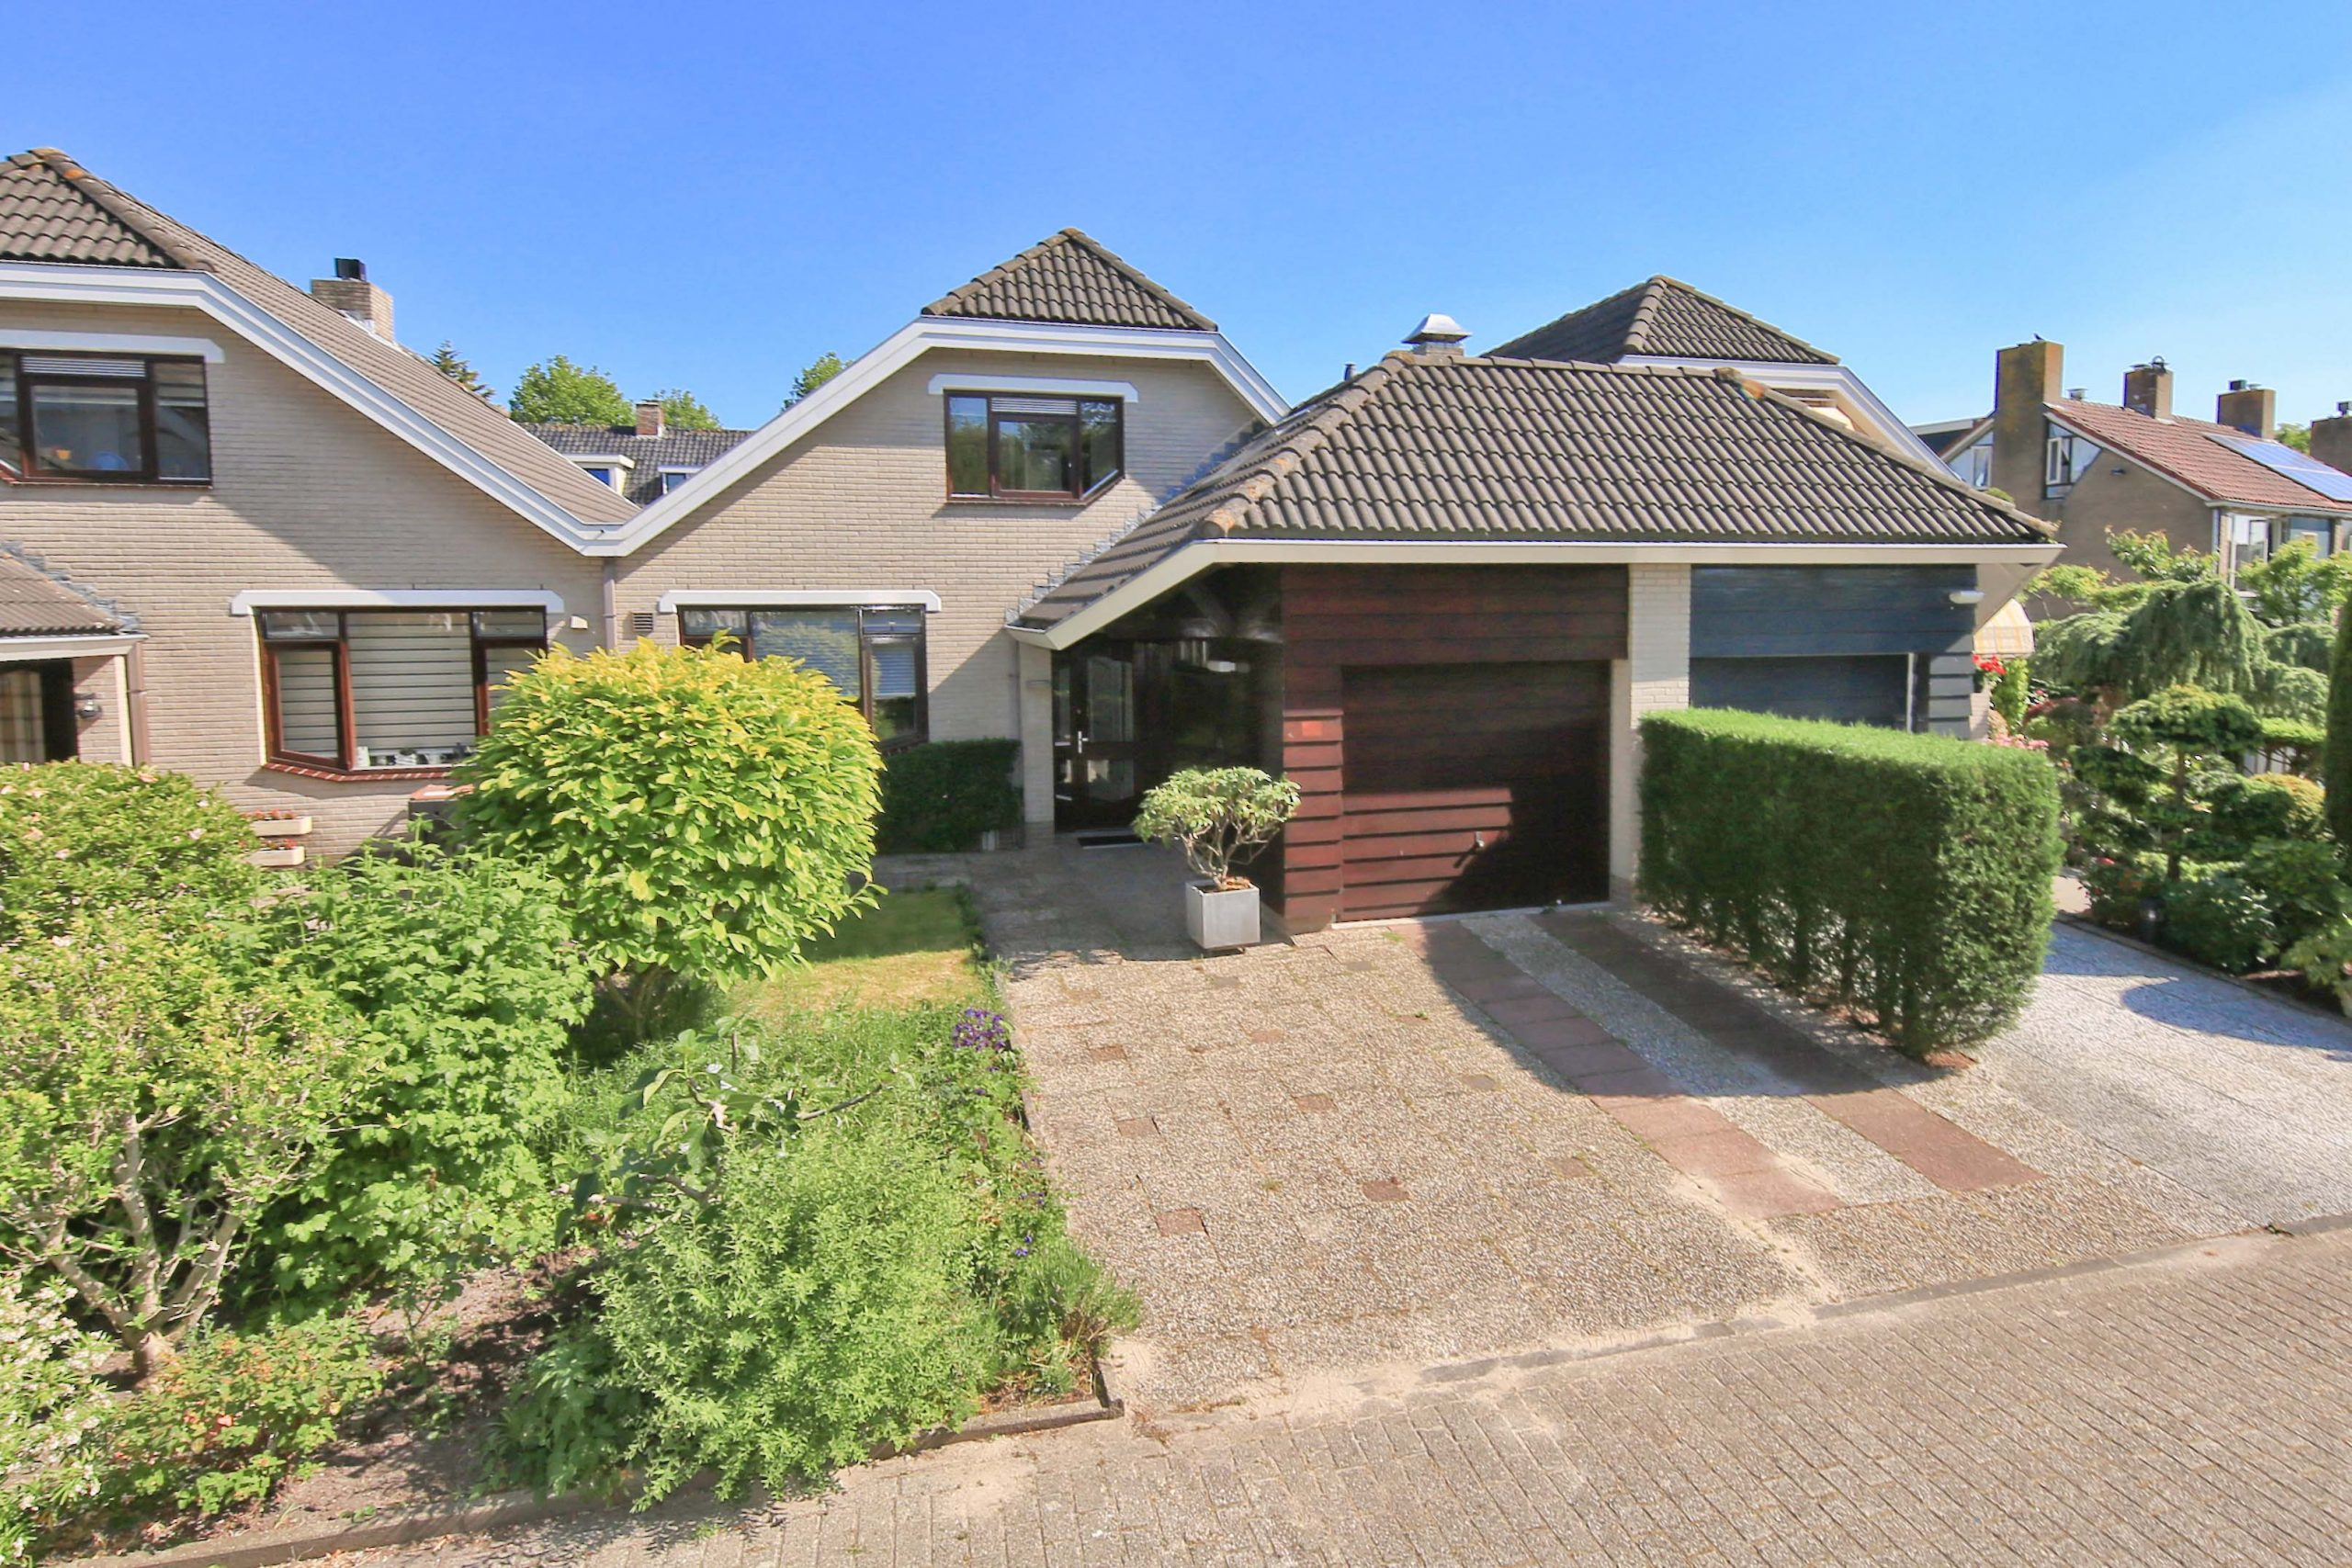 For rent for a limited time! Furnished semi-detached villa with garage at Toevluchtstraat 26 @ Badhoevedorp